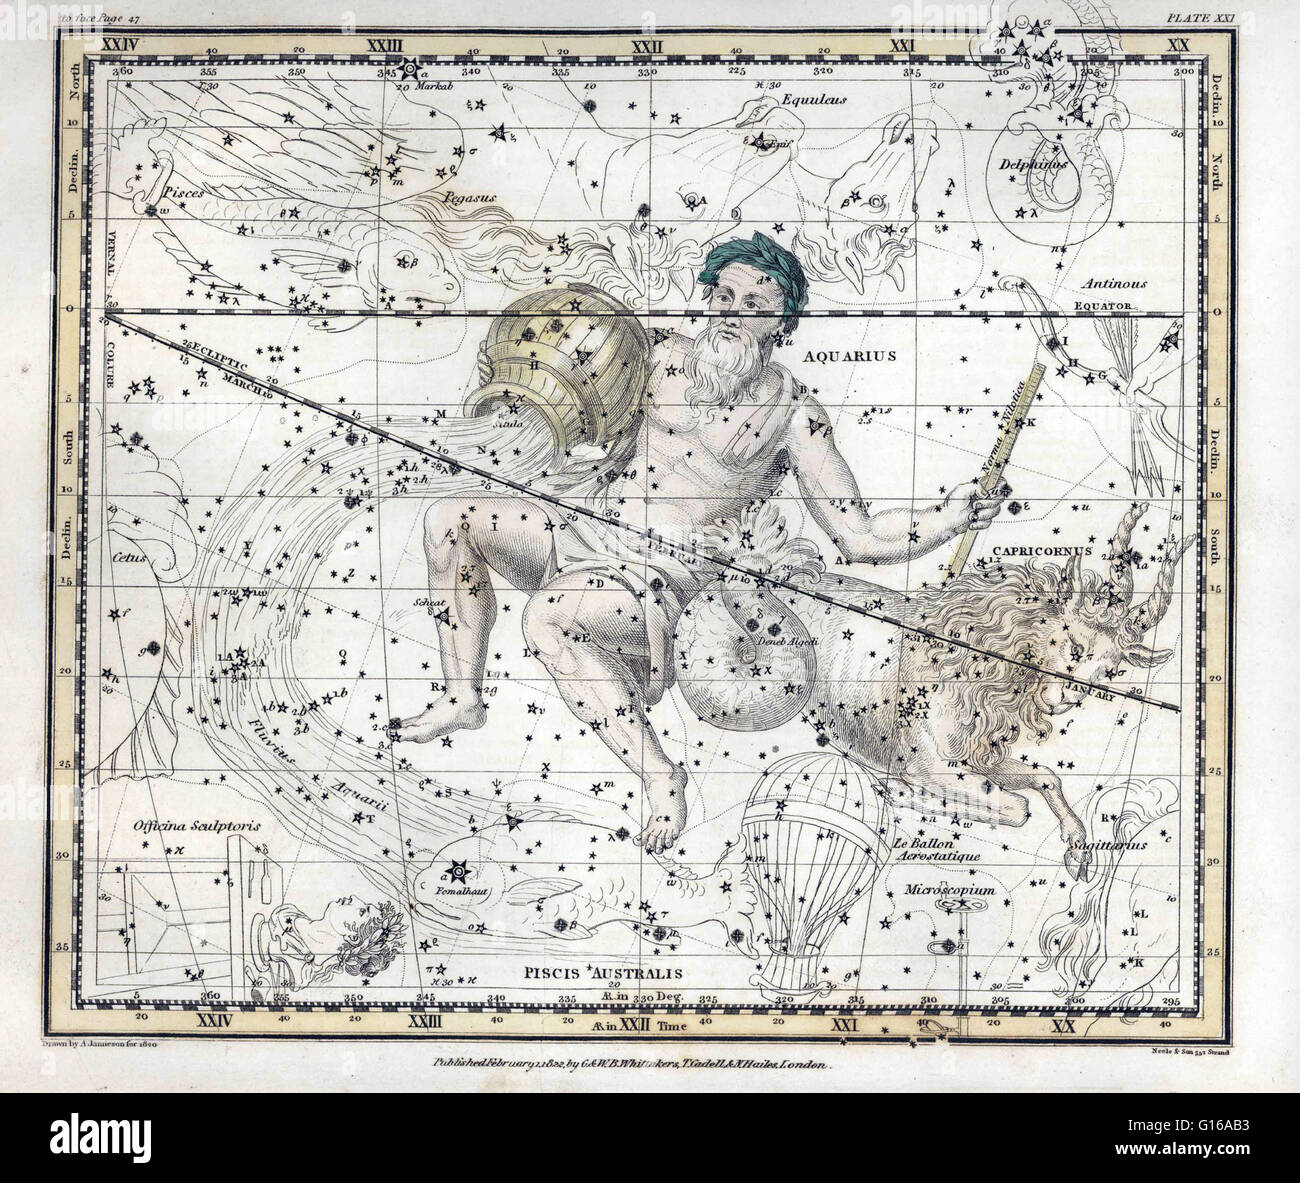 Aquarius is a constellation of the zodiac. Its name is Latin for, water-carrier or cup-carrier. Aquarius is the - Stock Image